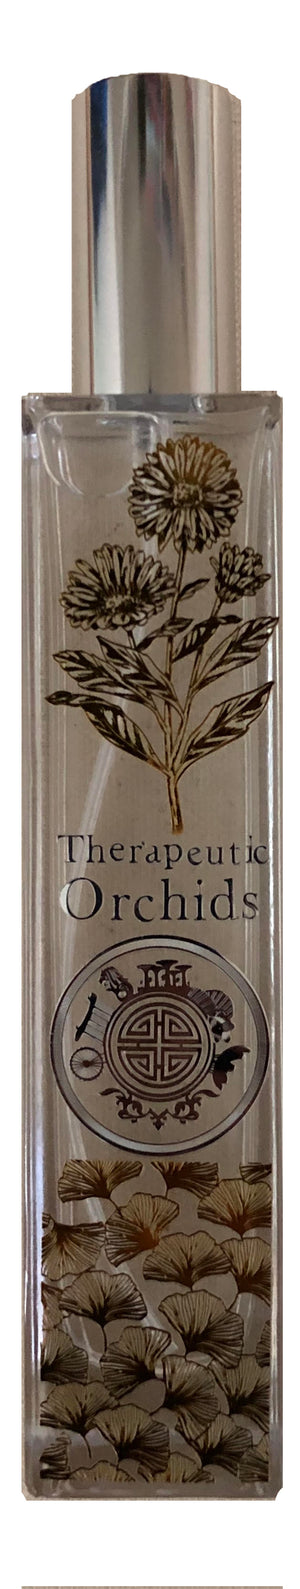 Therapeutic medicinal orchids singapore scent is a Perfect gift for corporate events in singapore